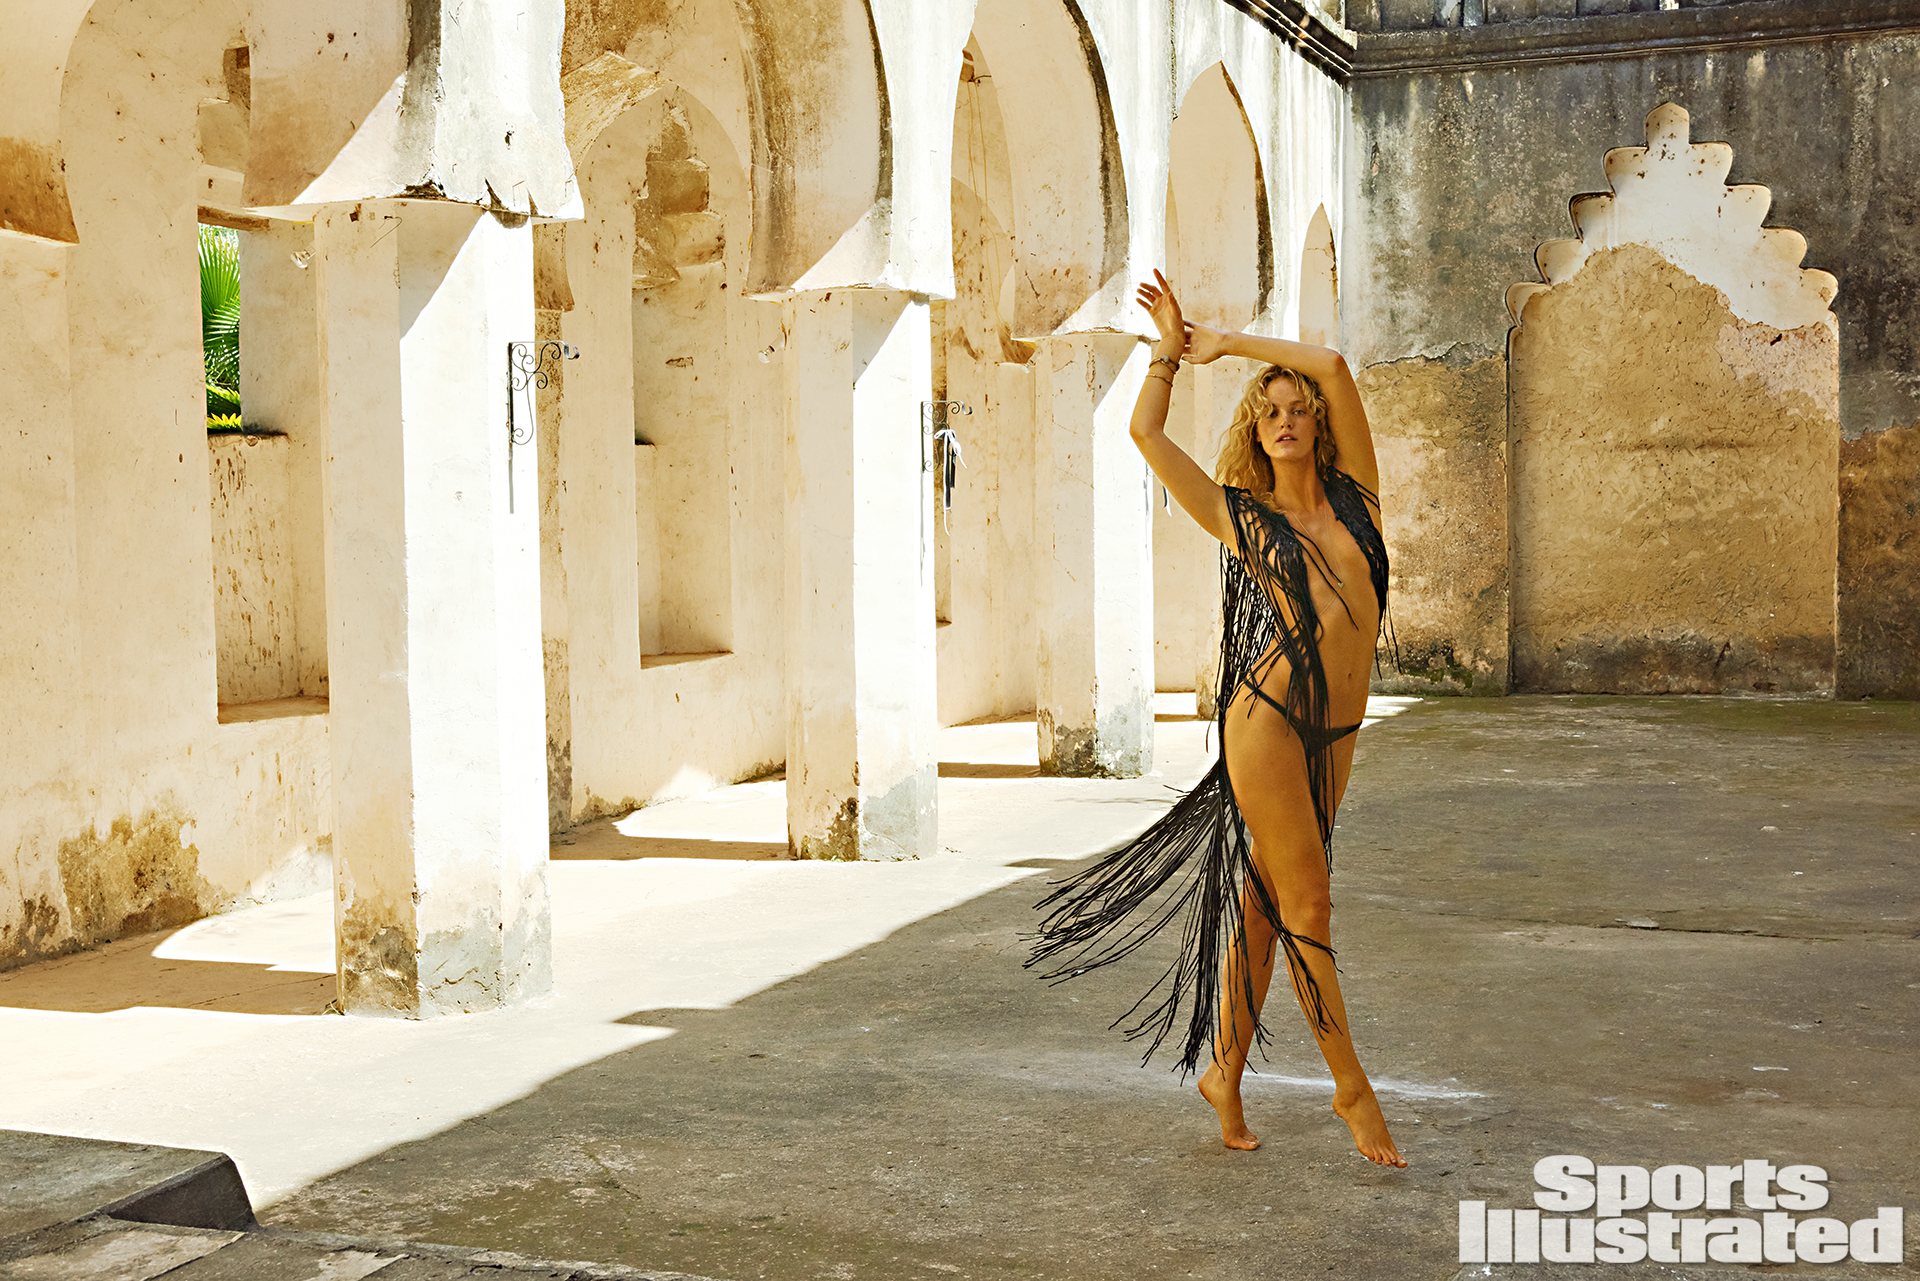 Erin Heatheron was photographed by Ruven Afanador in Zanzibar. Top by Lost Art by Jordan Betten. Swimsuit by INDAH.